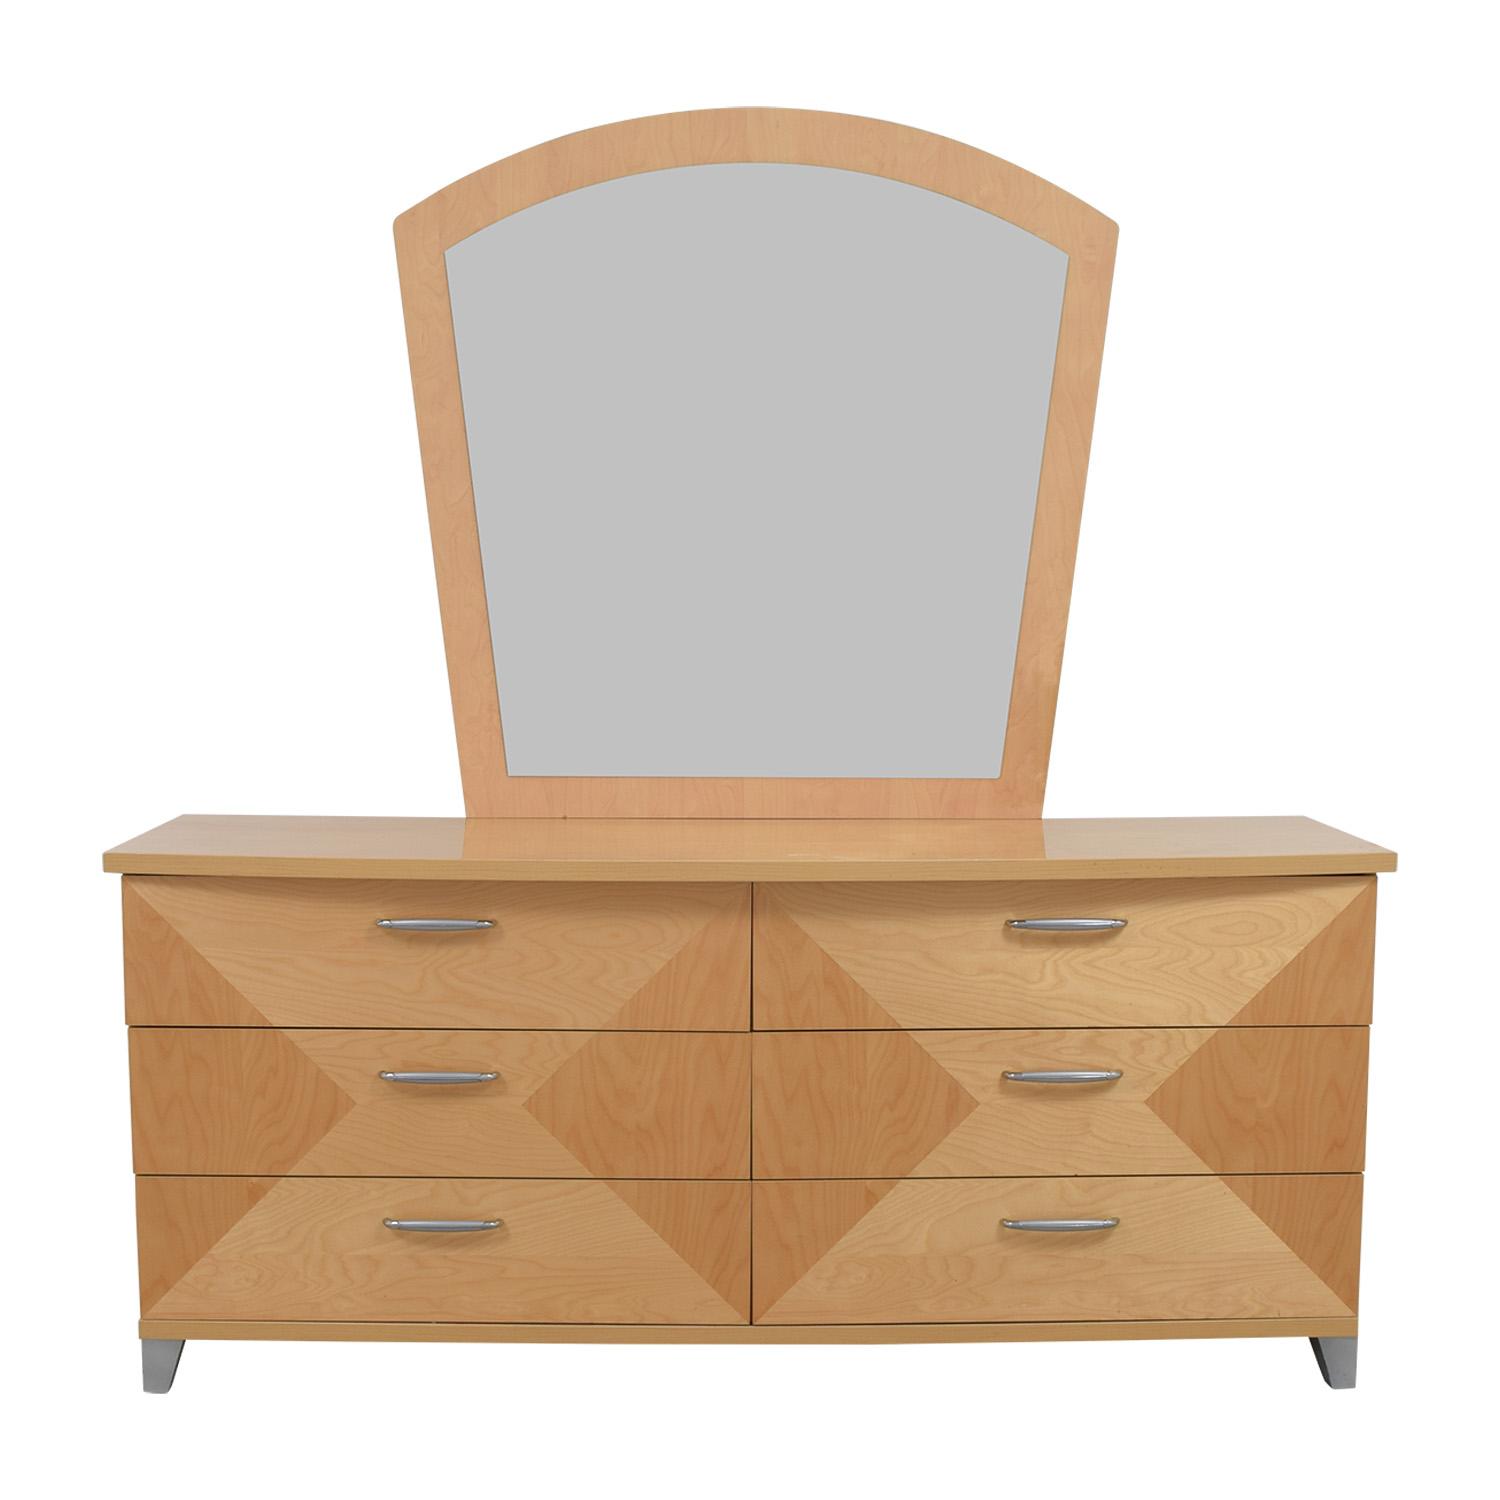 buy Two-Toned Natural Bedroom Dresser with Mirror